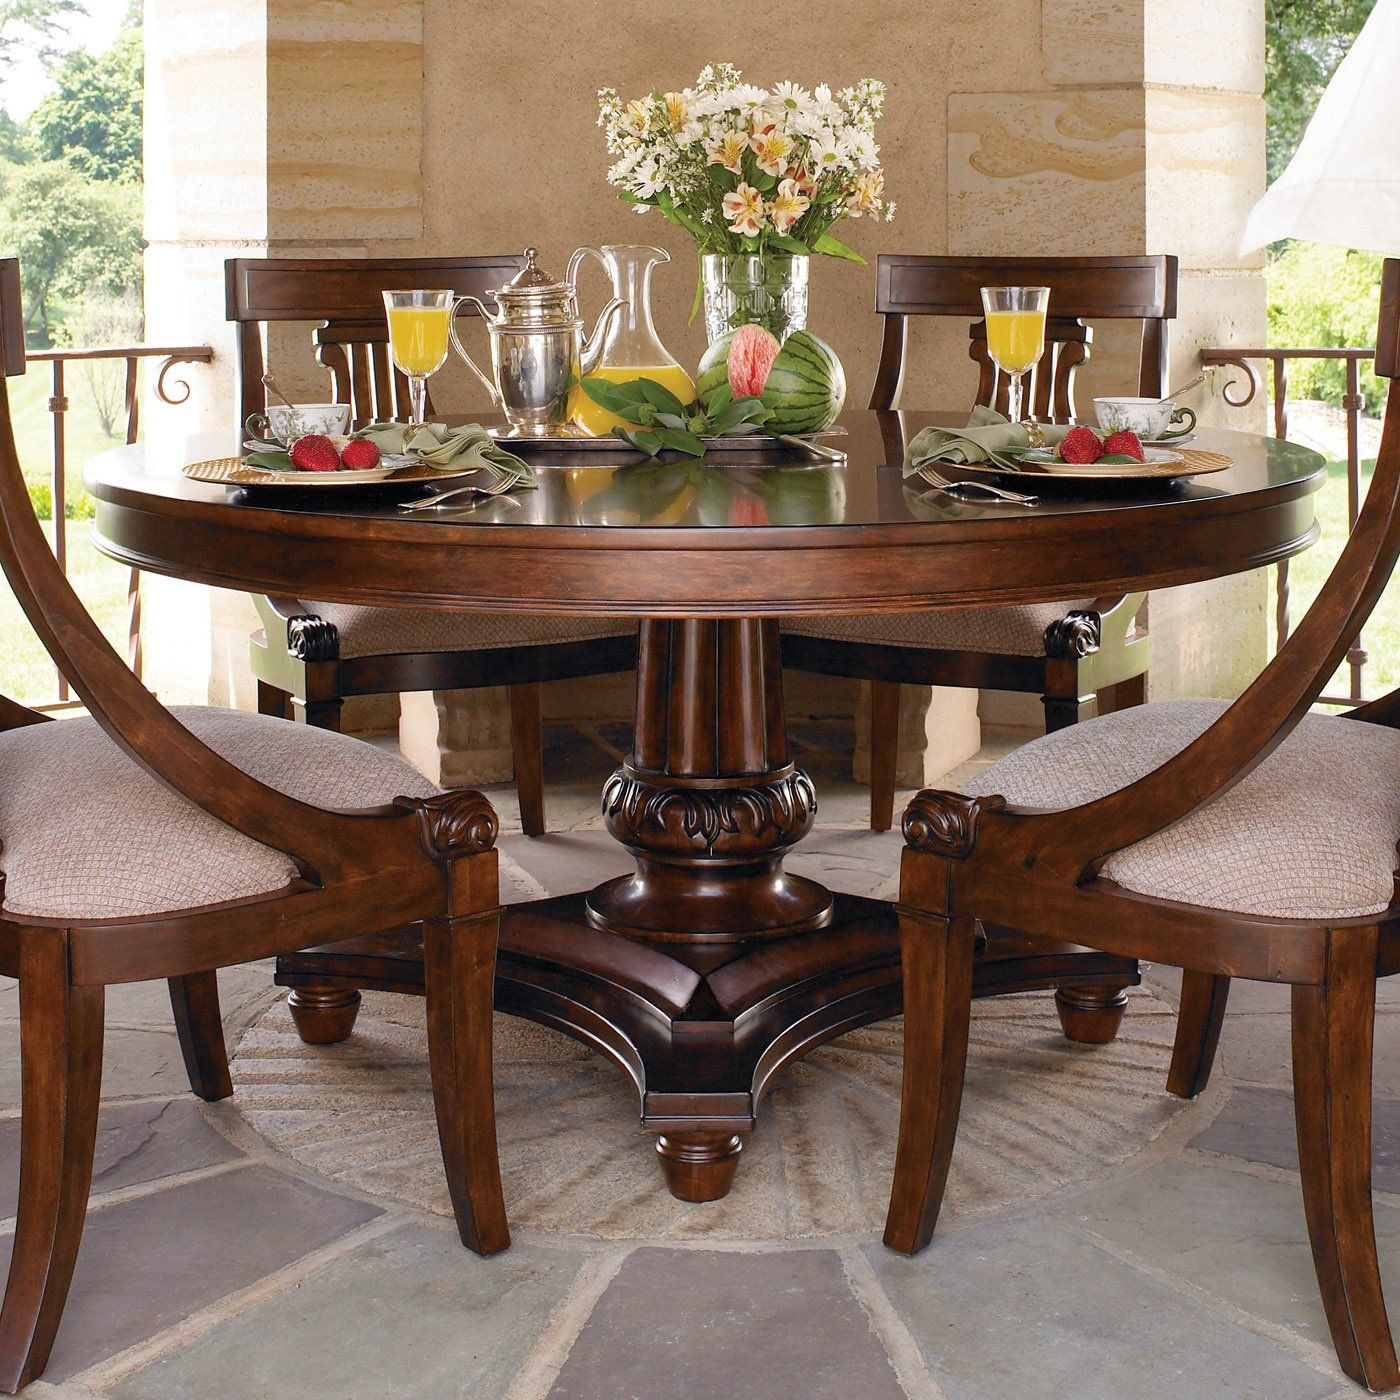 Kincaid Dining Room Furniture: Kincaid Furniture Sturlyn Round Dining Table:Rochester, NY